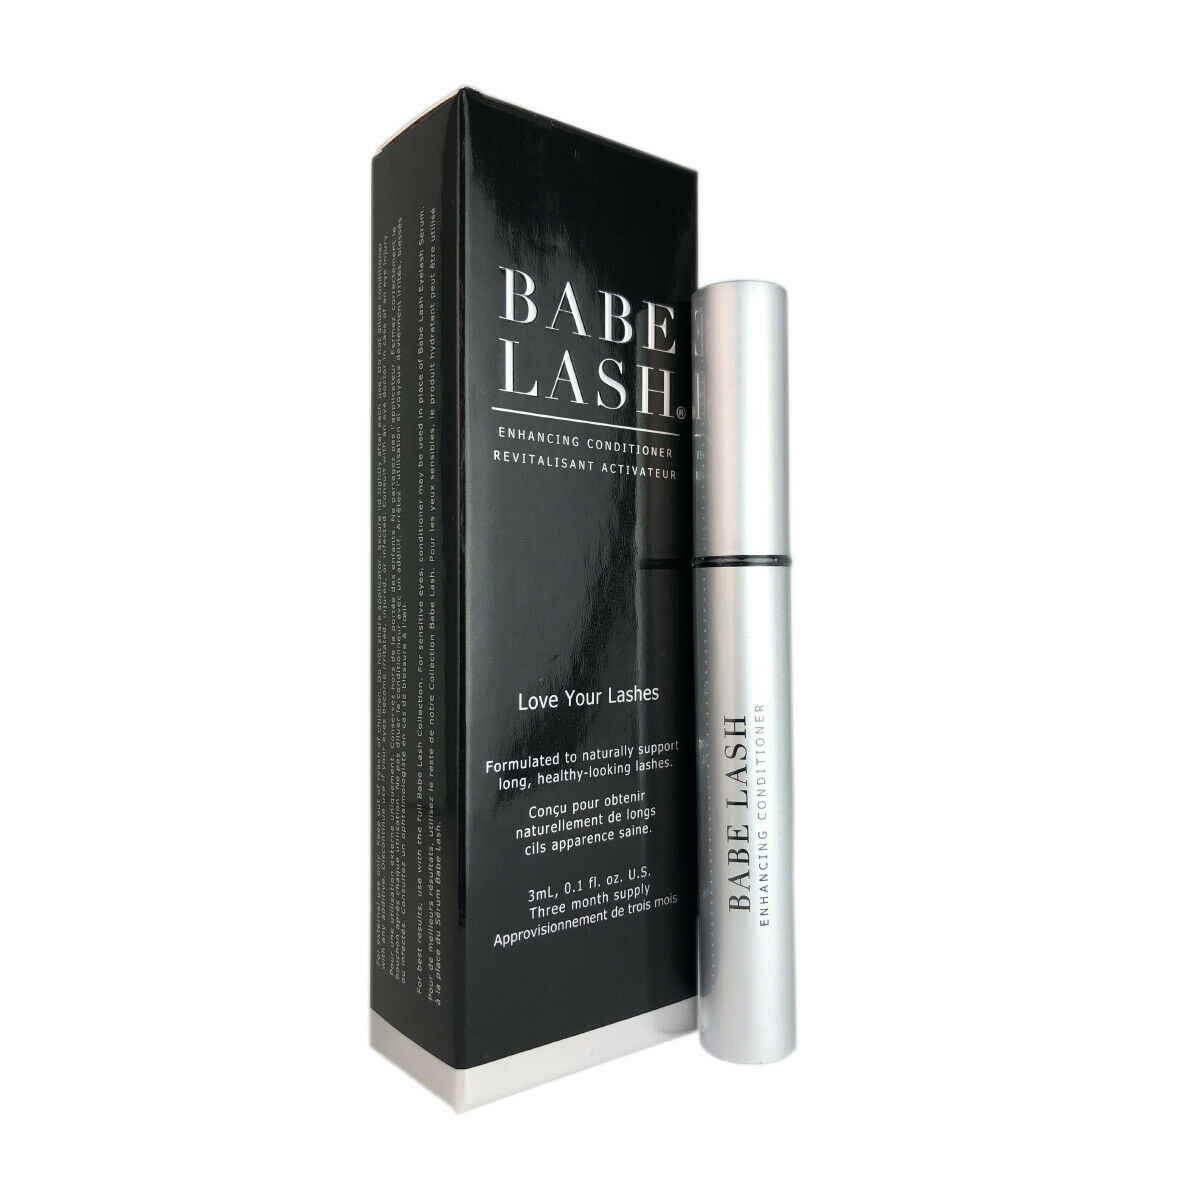 7583bdc0a8c Babe Lash 3 ml Enhancing Eyelash Conditioner 704129539990 | eBay